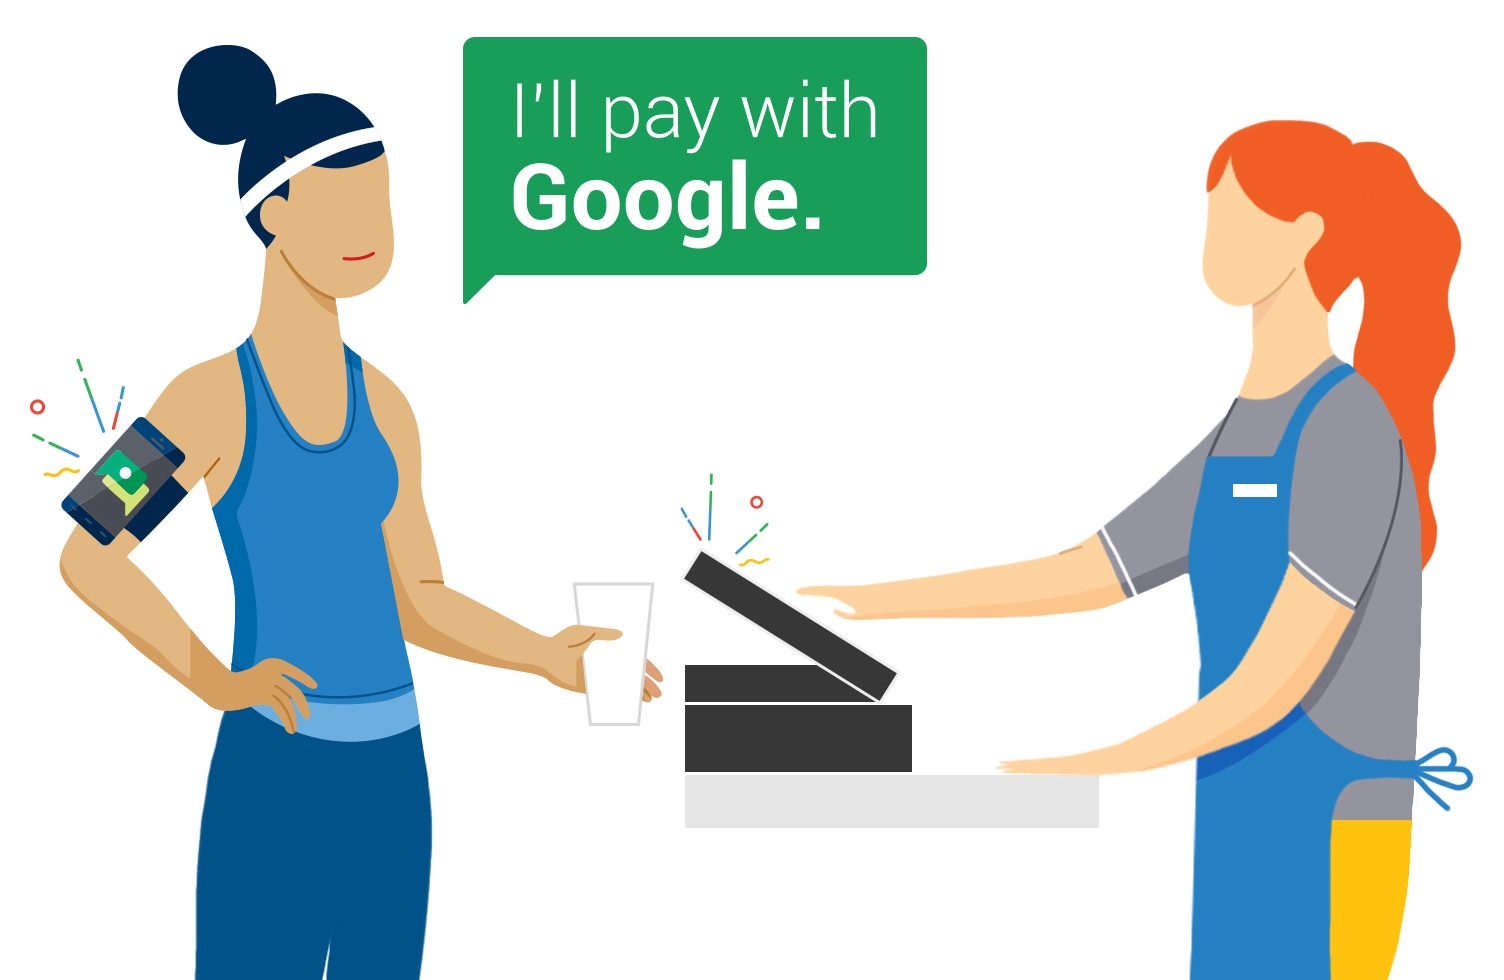 Google Hands Free payments